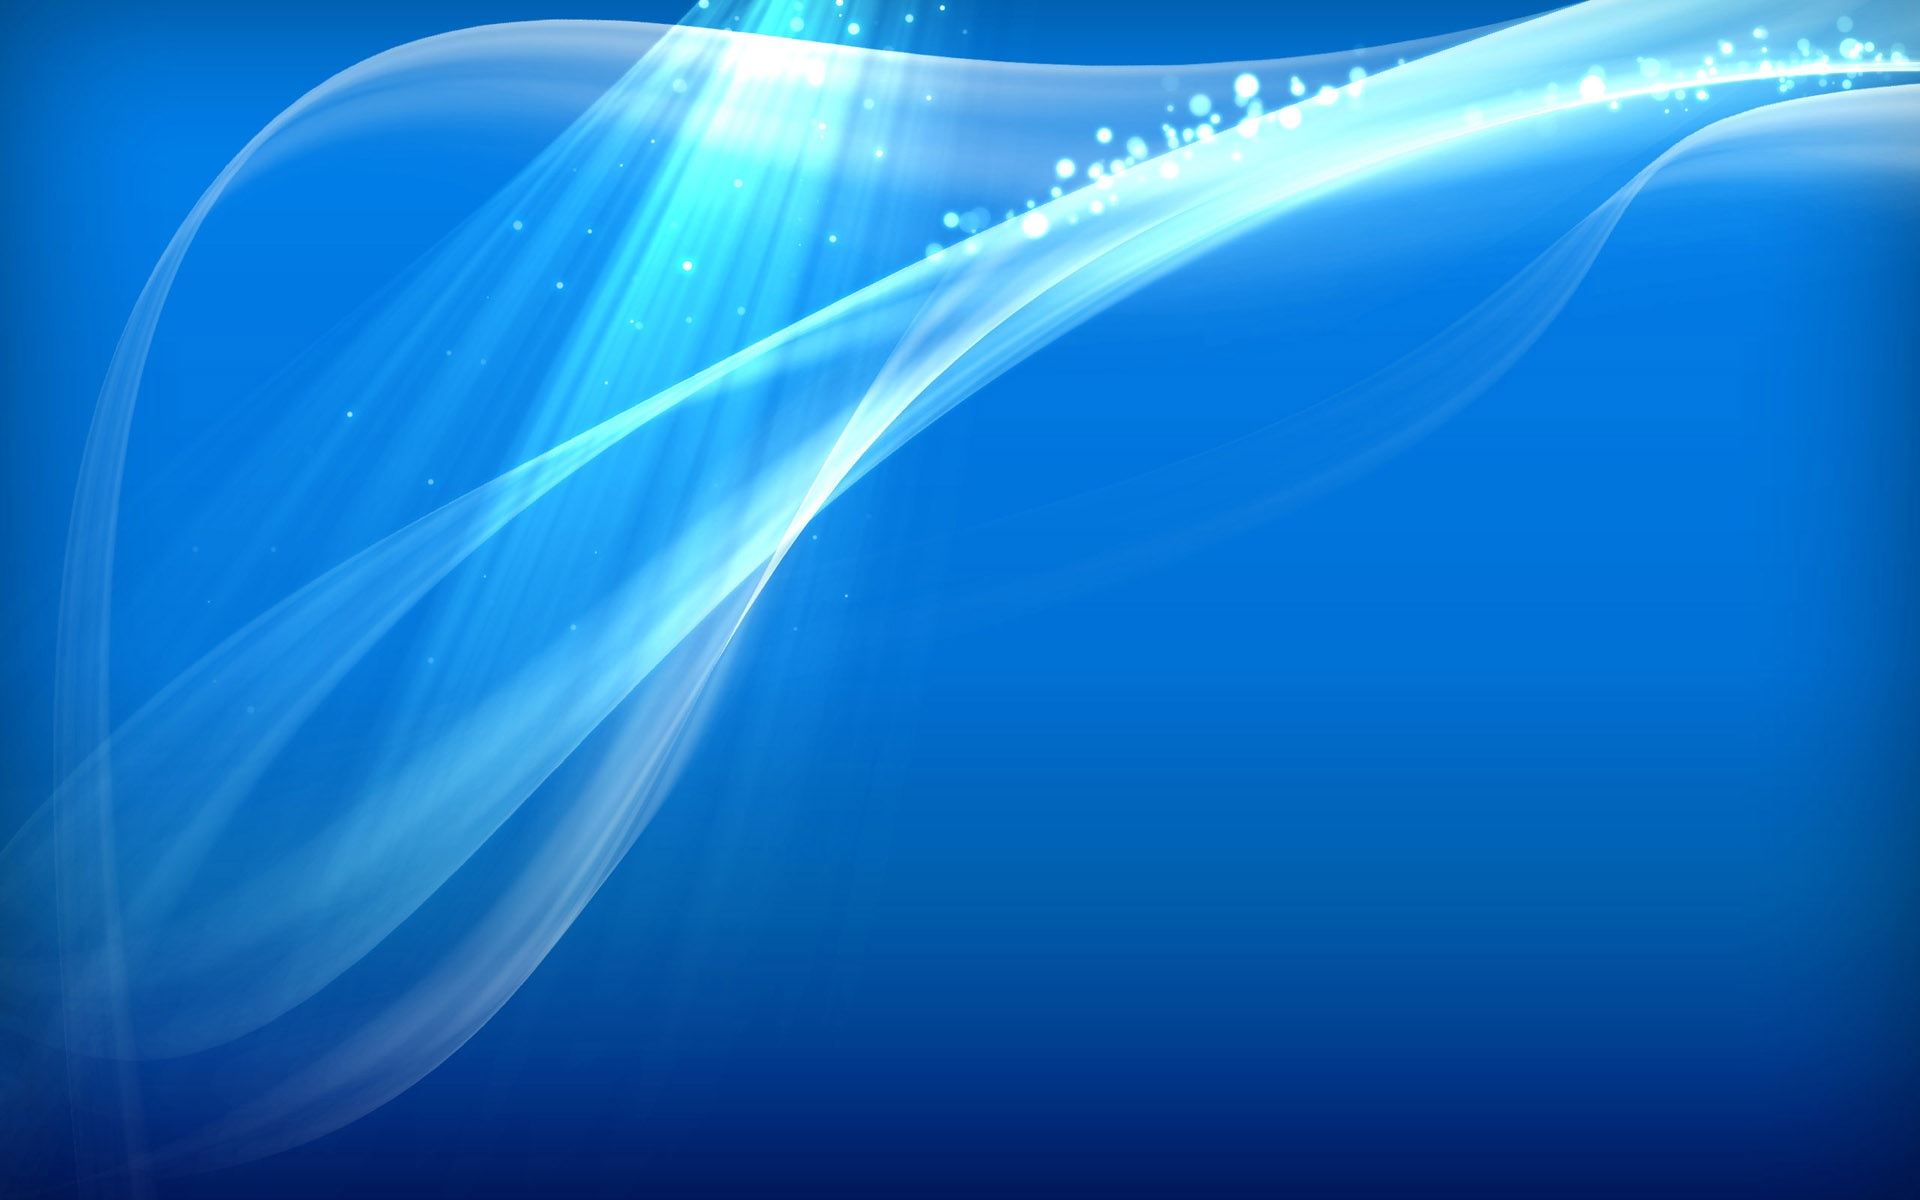 Abstract Background Backgrounds Webdesign Web Patterns Quality Blue 1920x1200